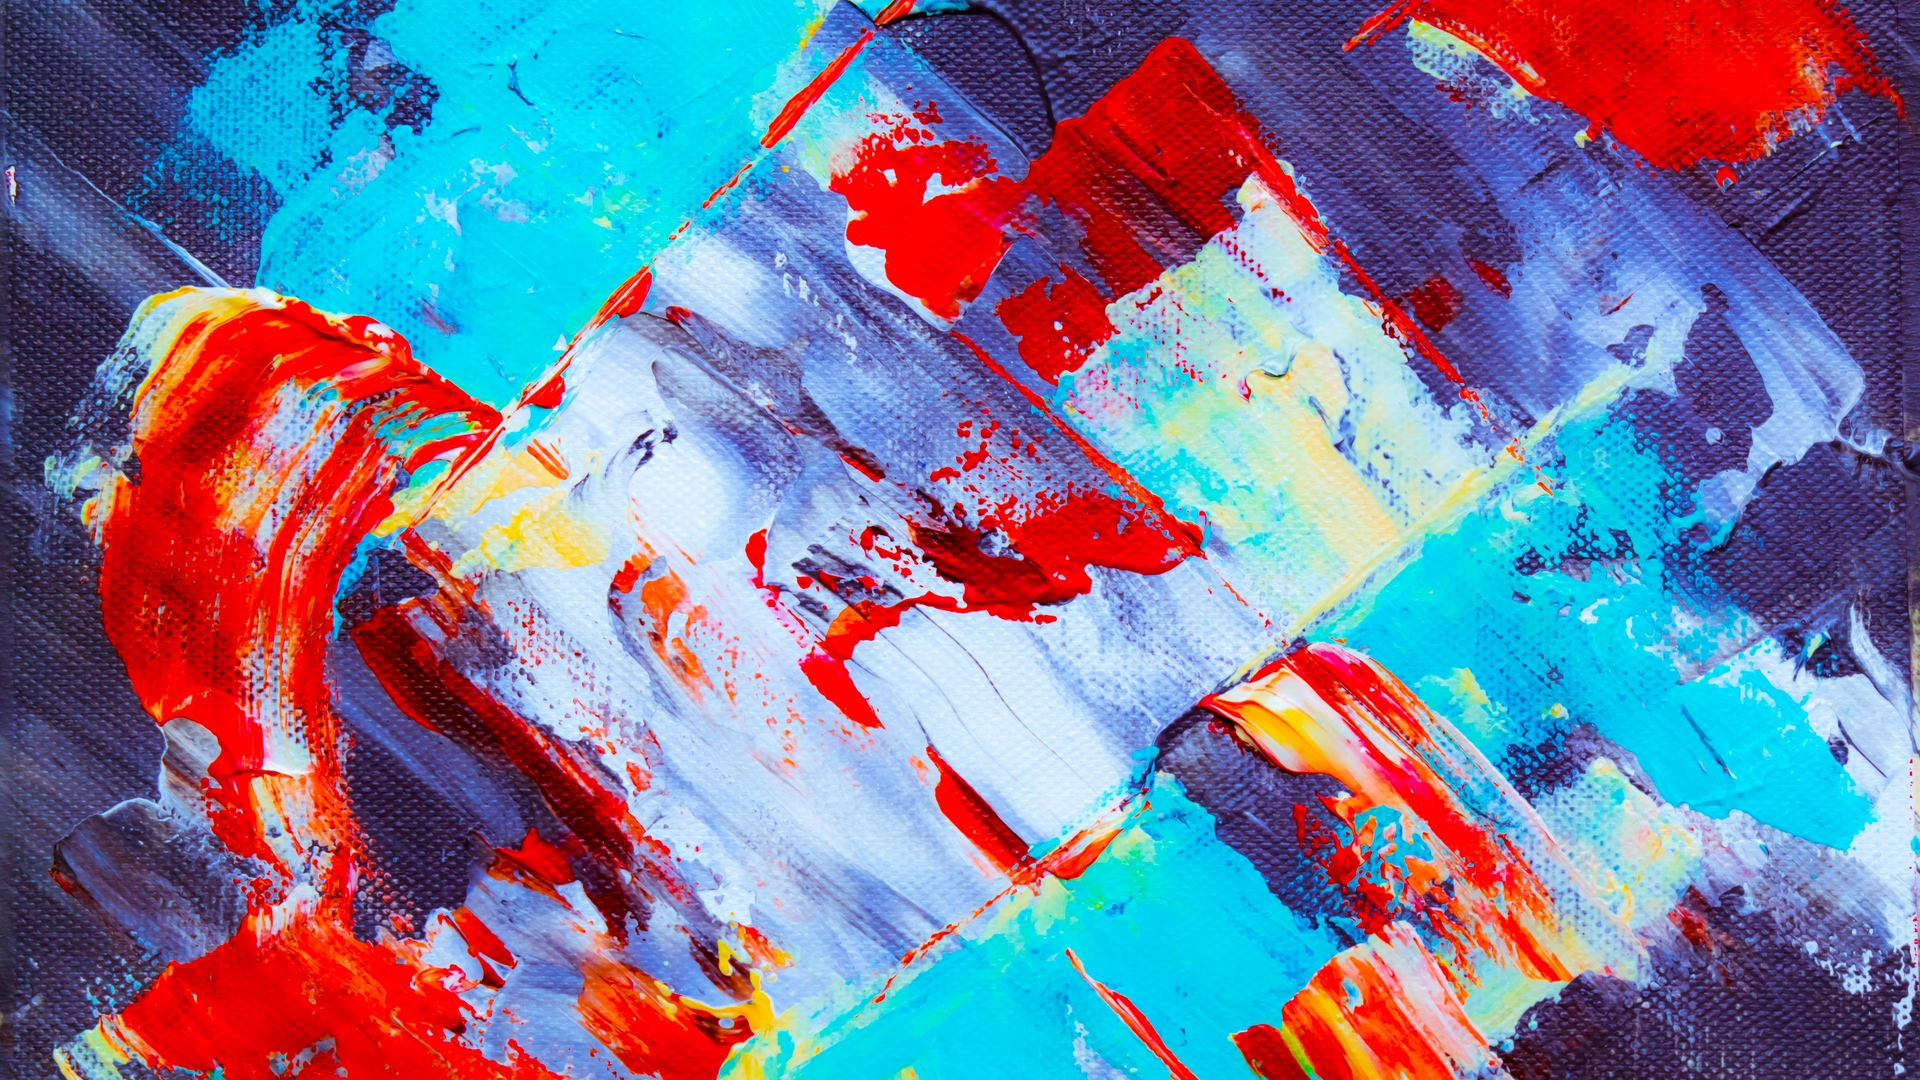 Wallpaper Canvas, Paint, Acrylic, Stains, Chaos, Abstract - 4k Ultra Hd Wallpapers 4k Full Color - HD Wallpaper